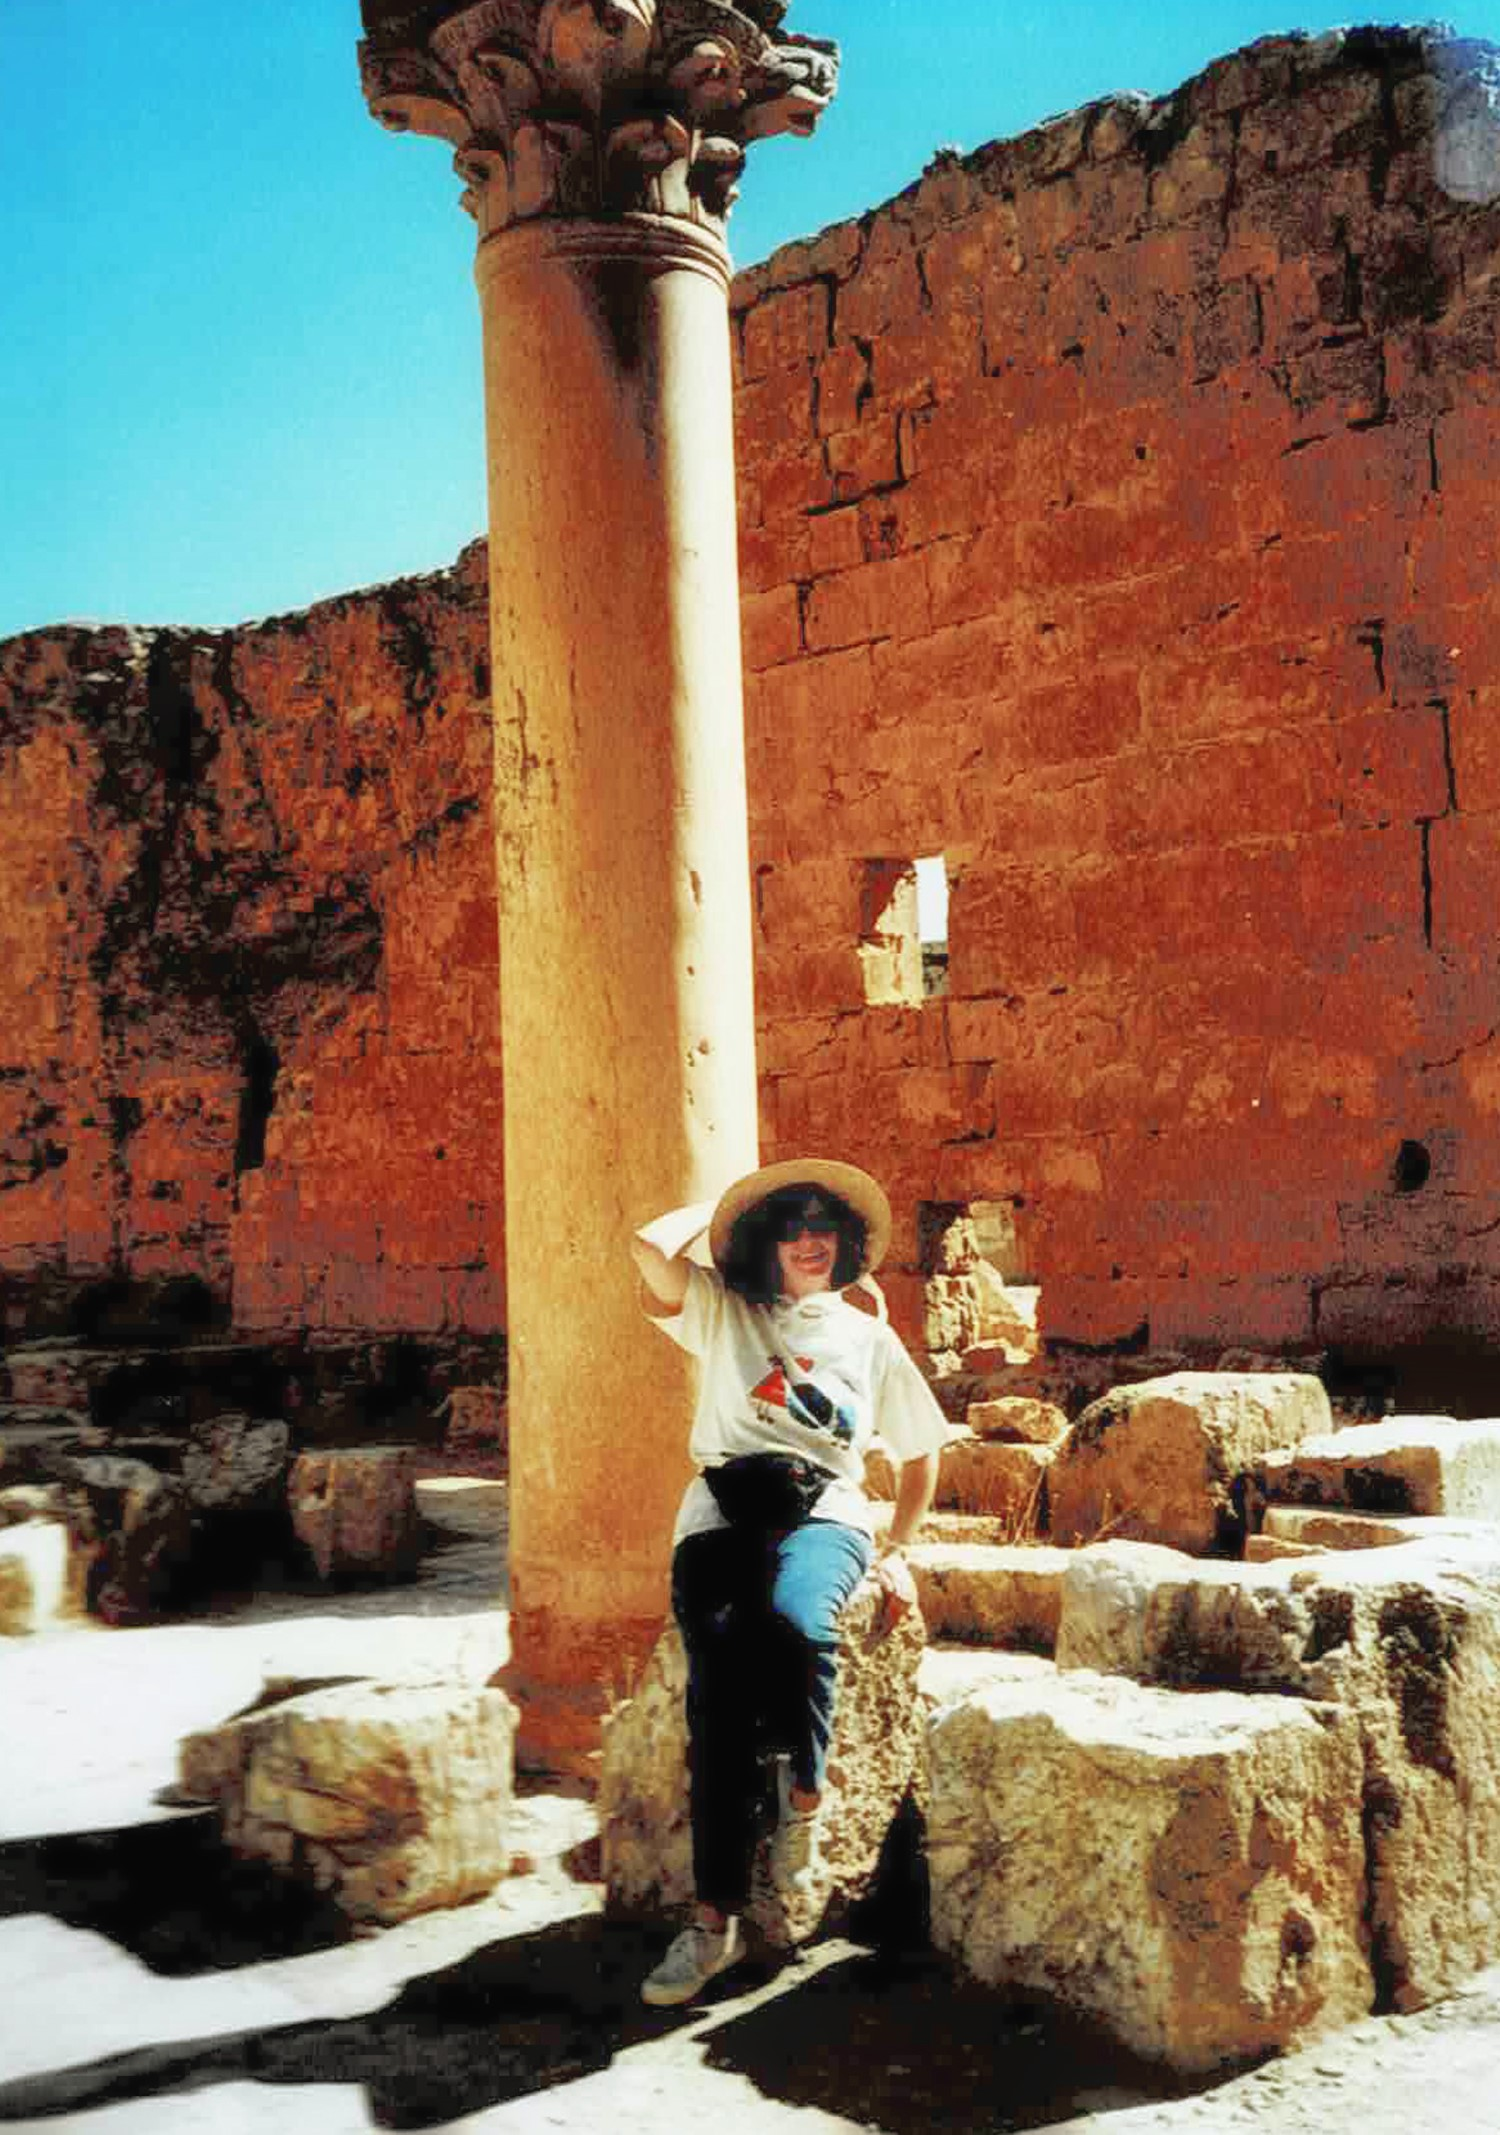 Woman in a hat in front of a column